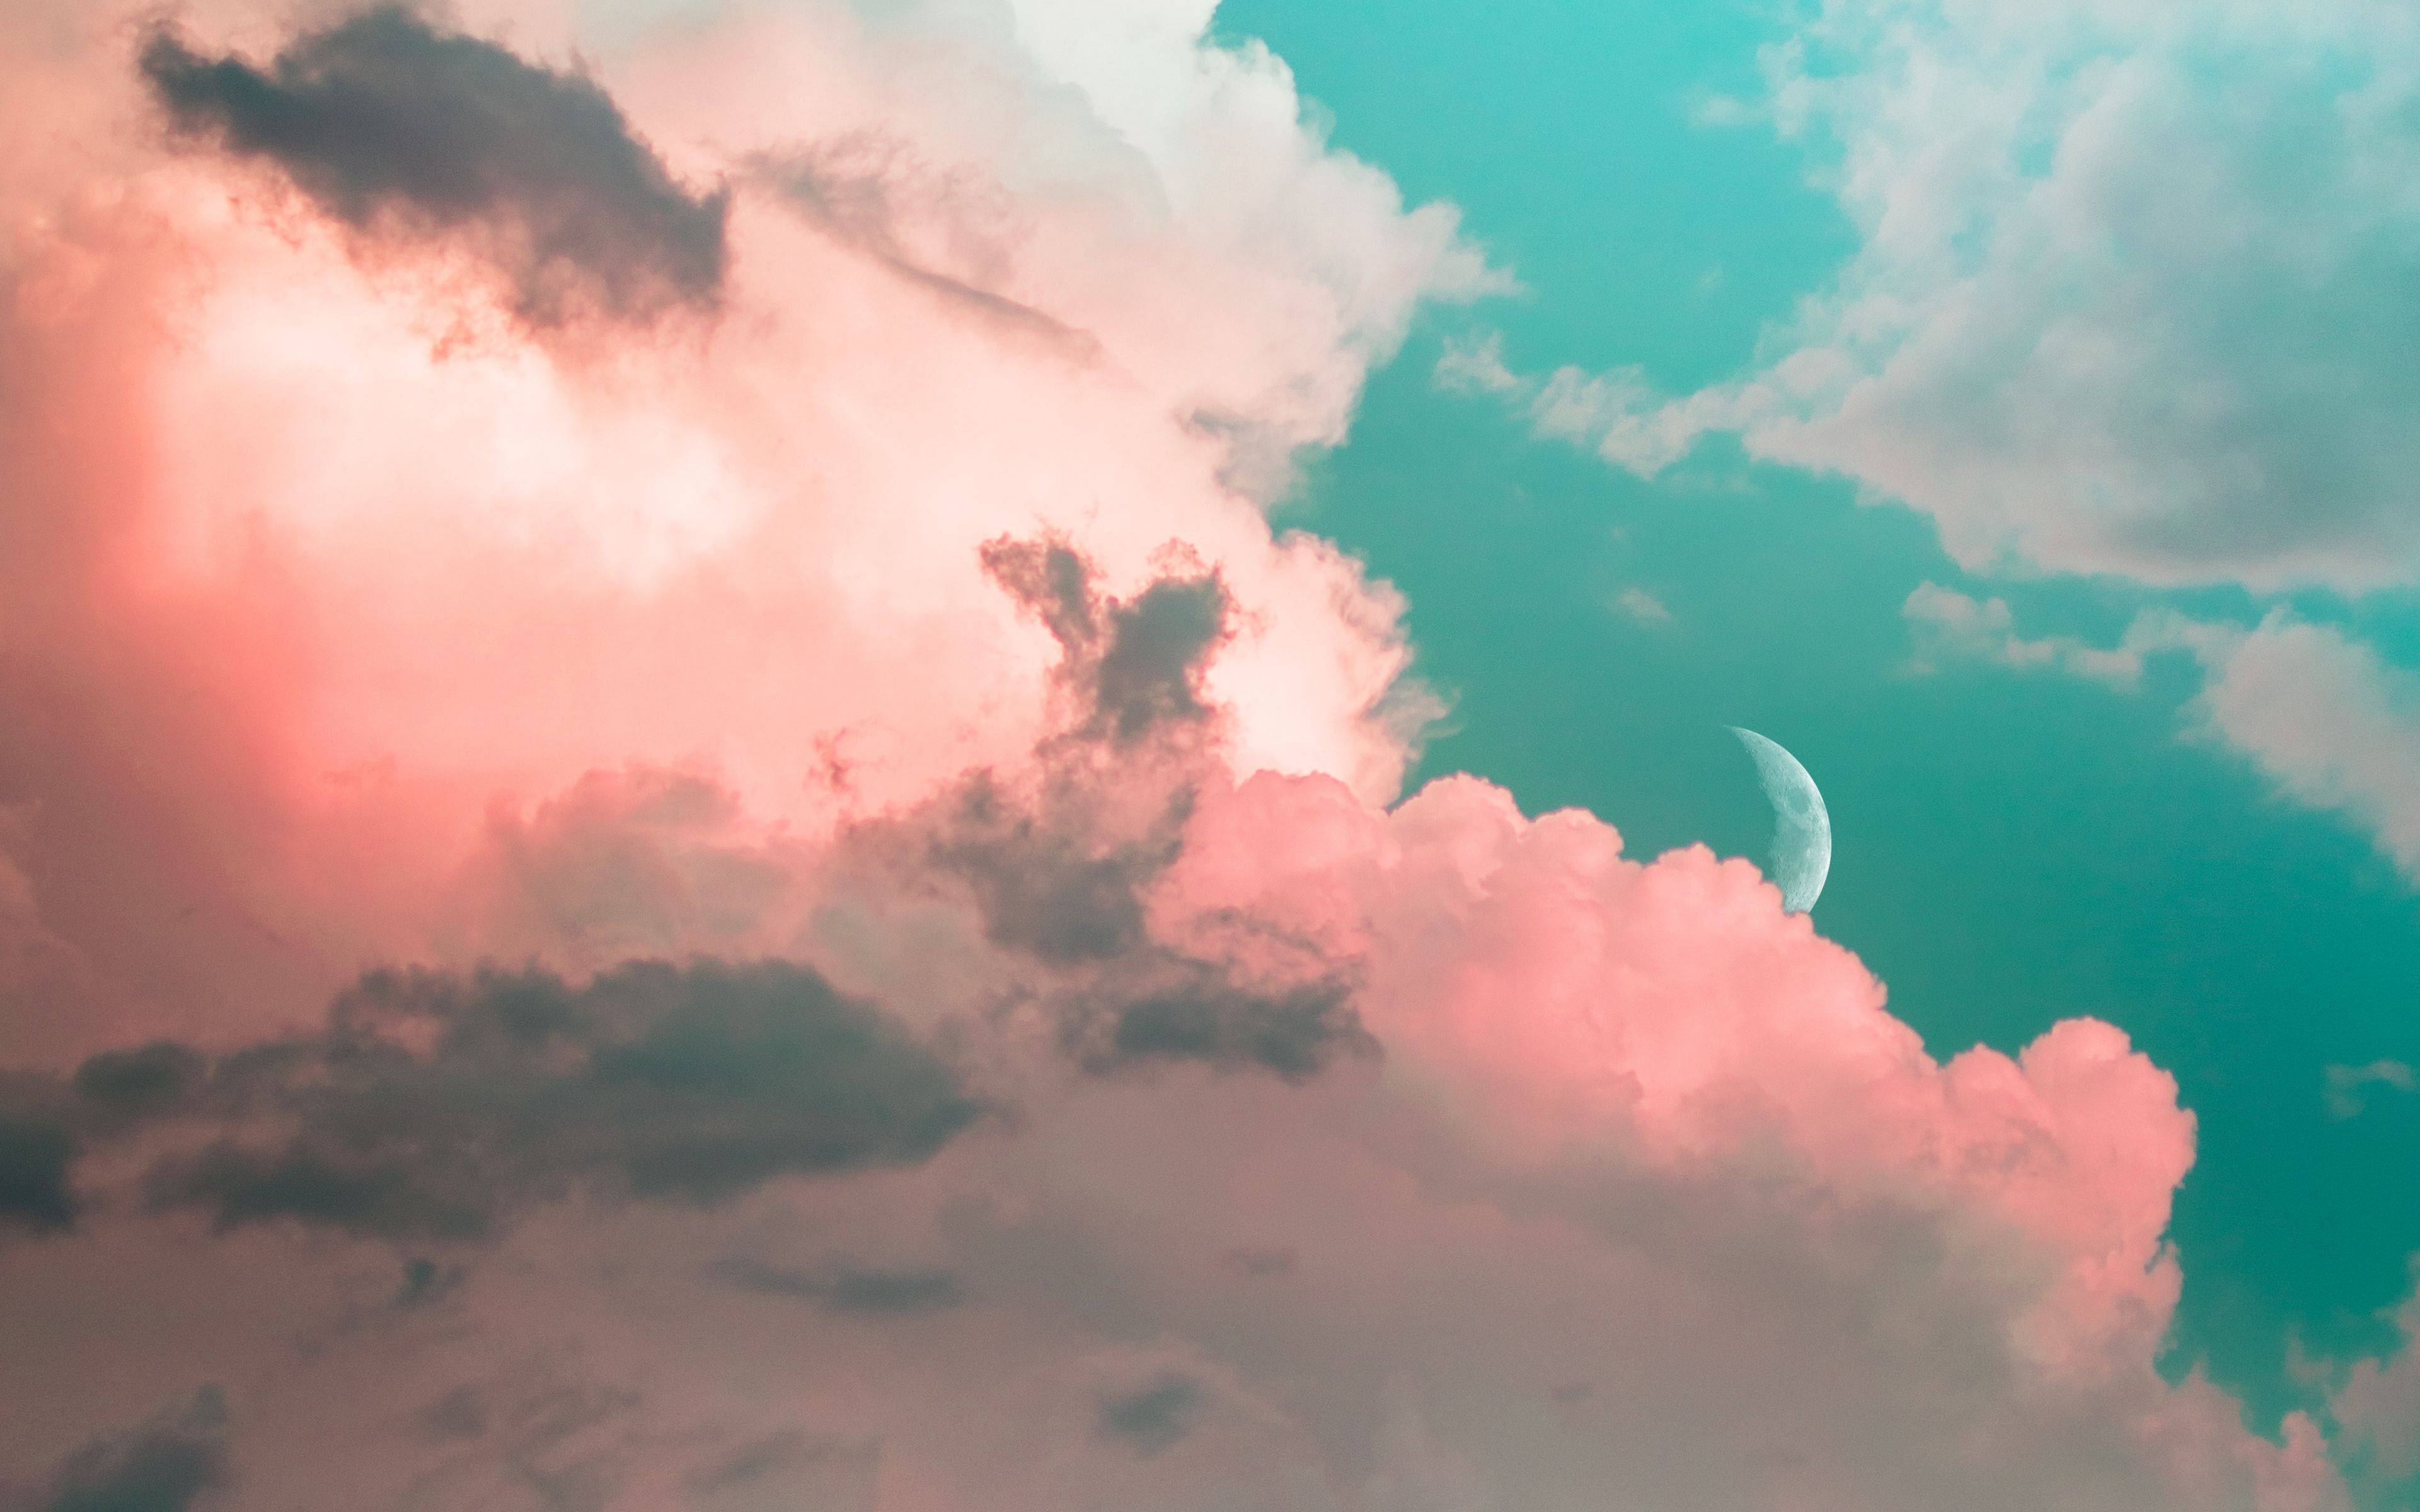 Download wallpapers 3840x2400 clouds, sky, moon, porous, light 4k